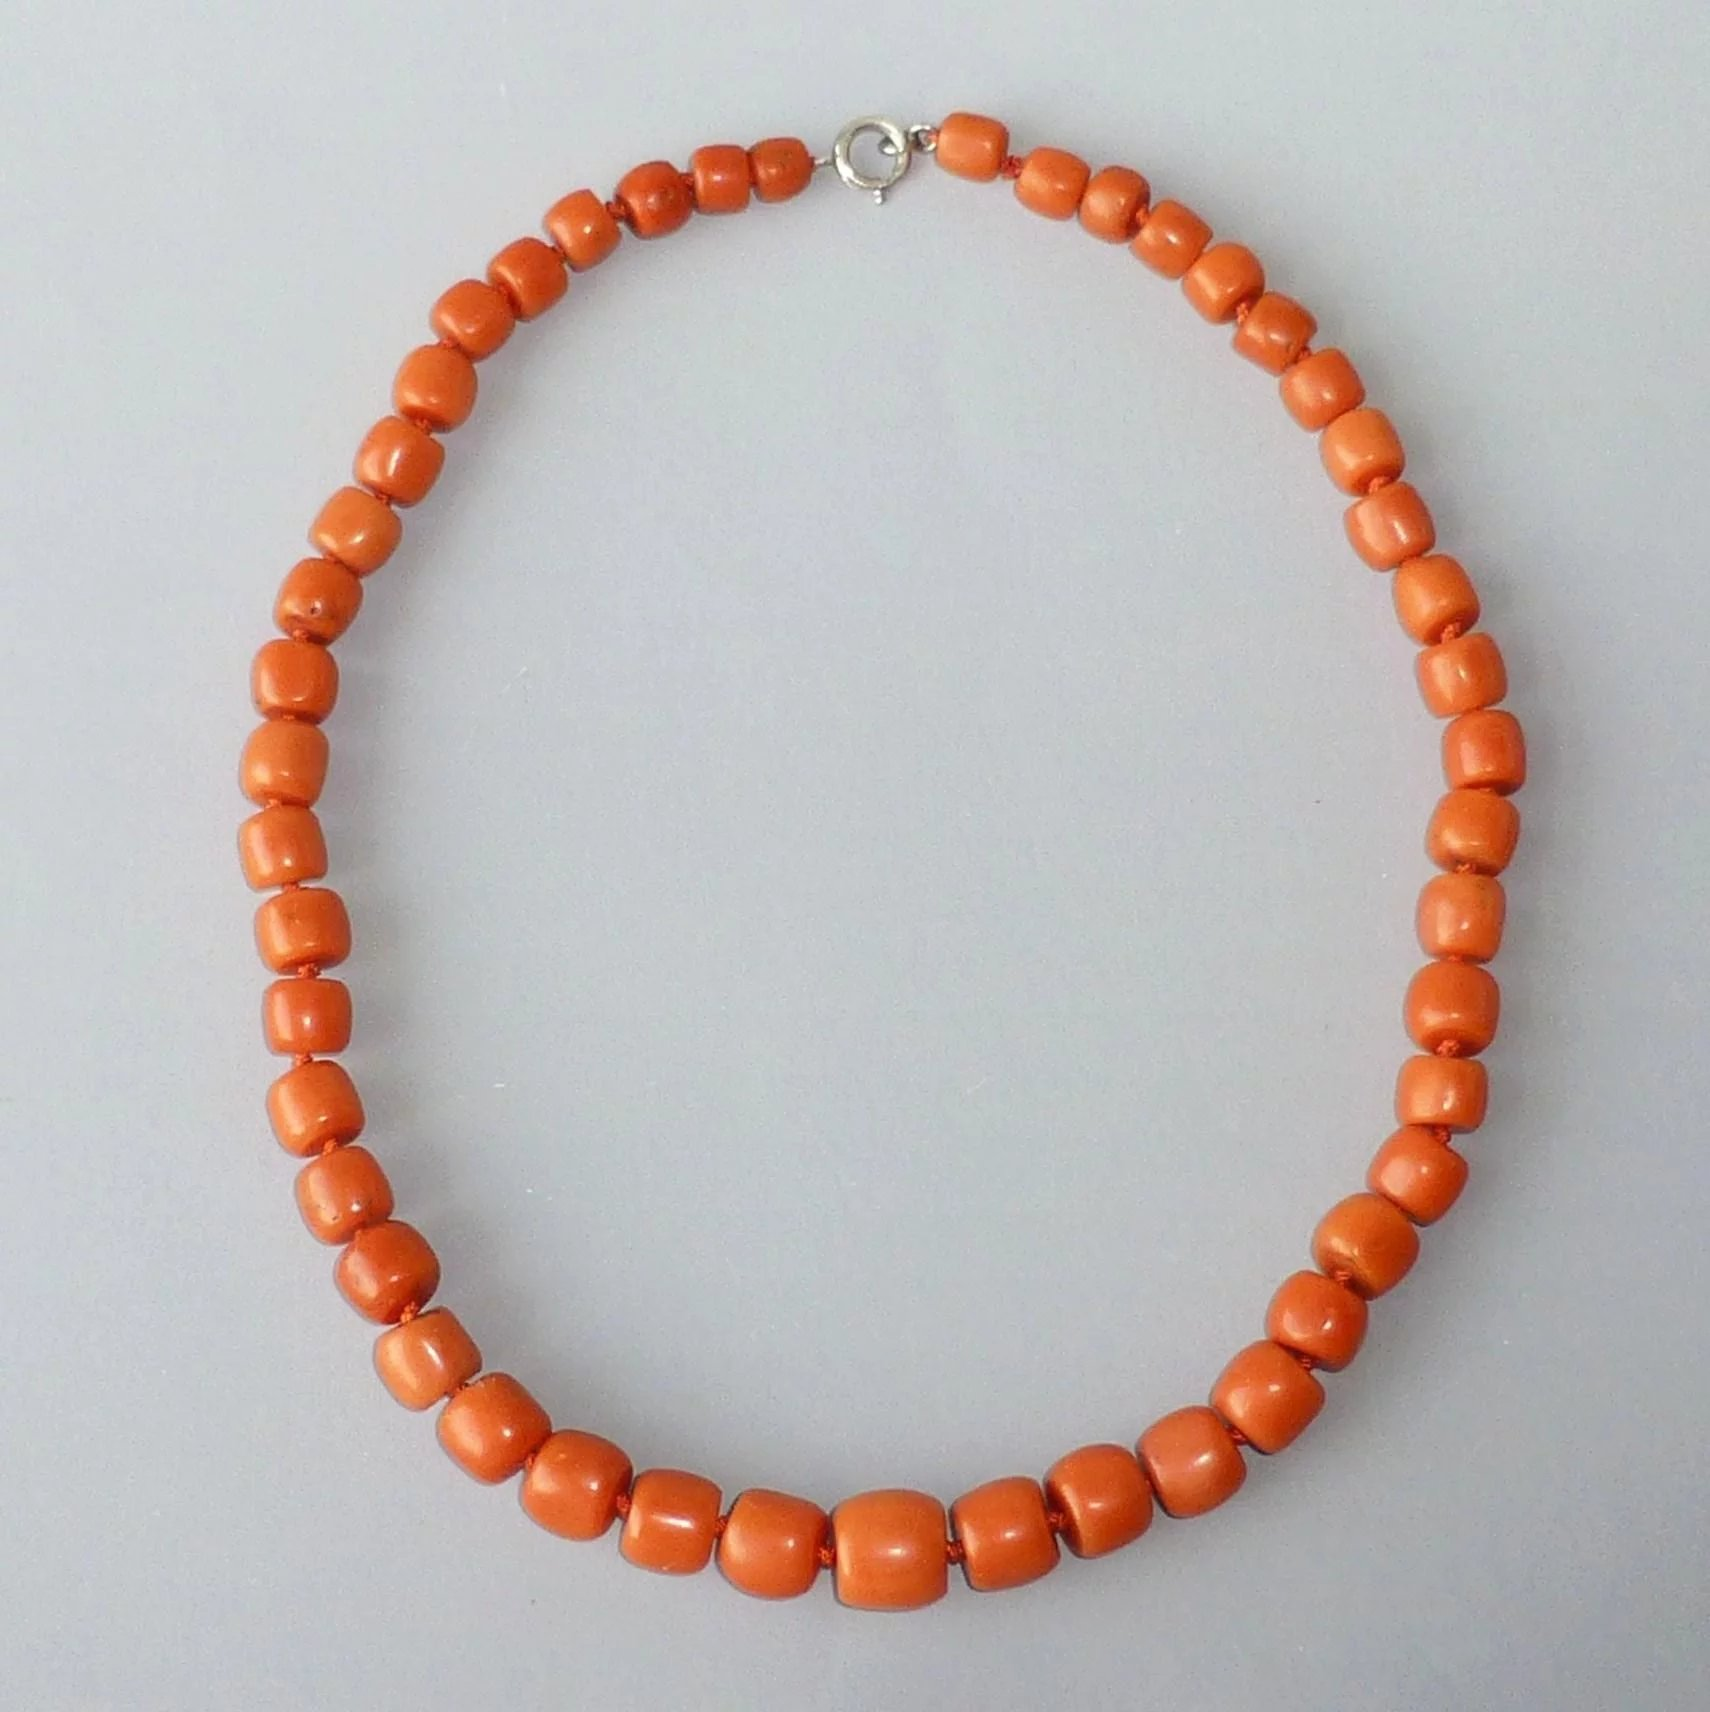 Fine Salmon Coral Necklace Antique Barrel Shaped Beads